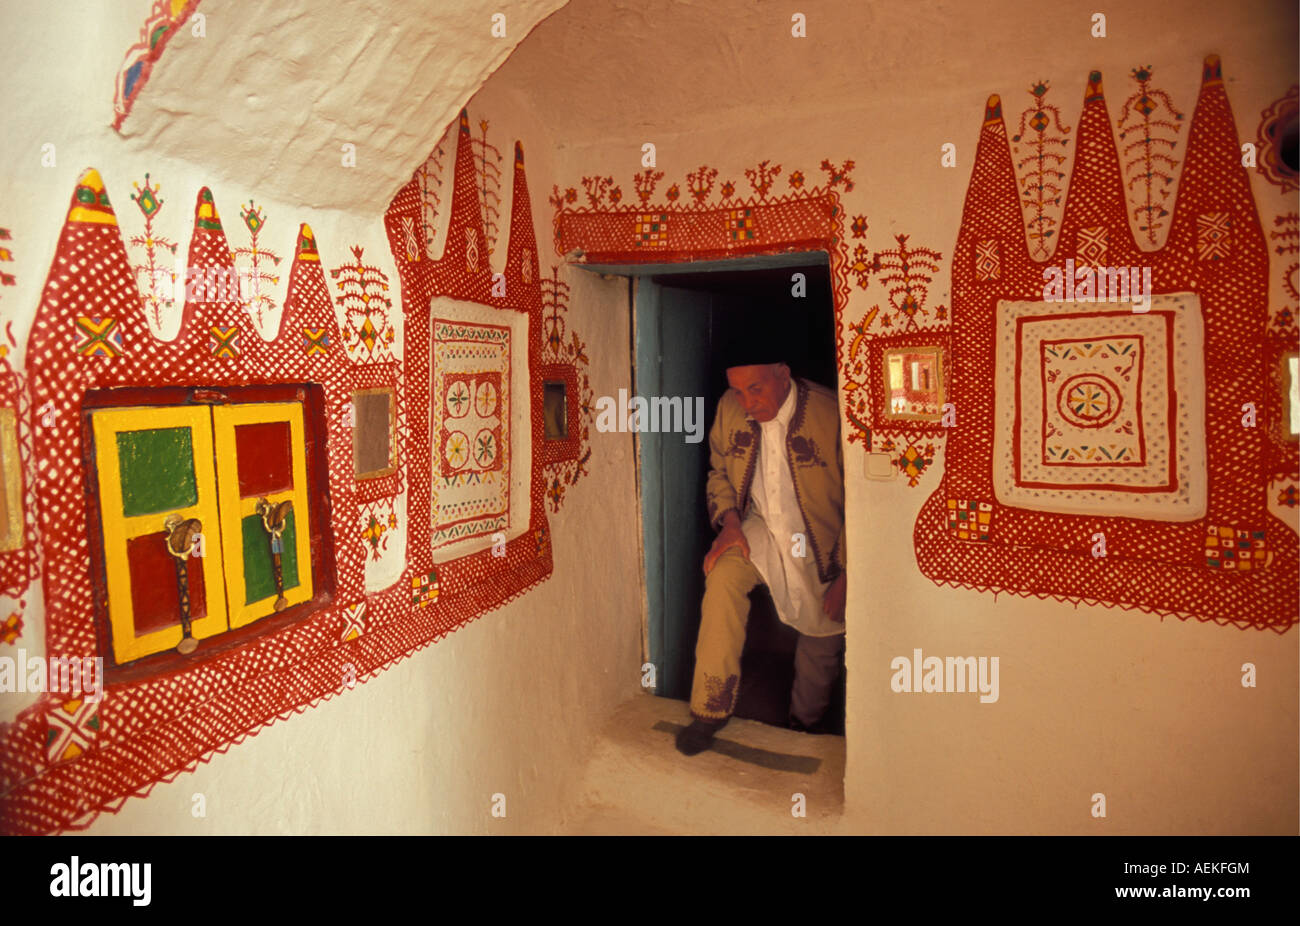 Libya Ghadames Local Berber man standing in house with painted walls - Stock Image